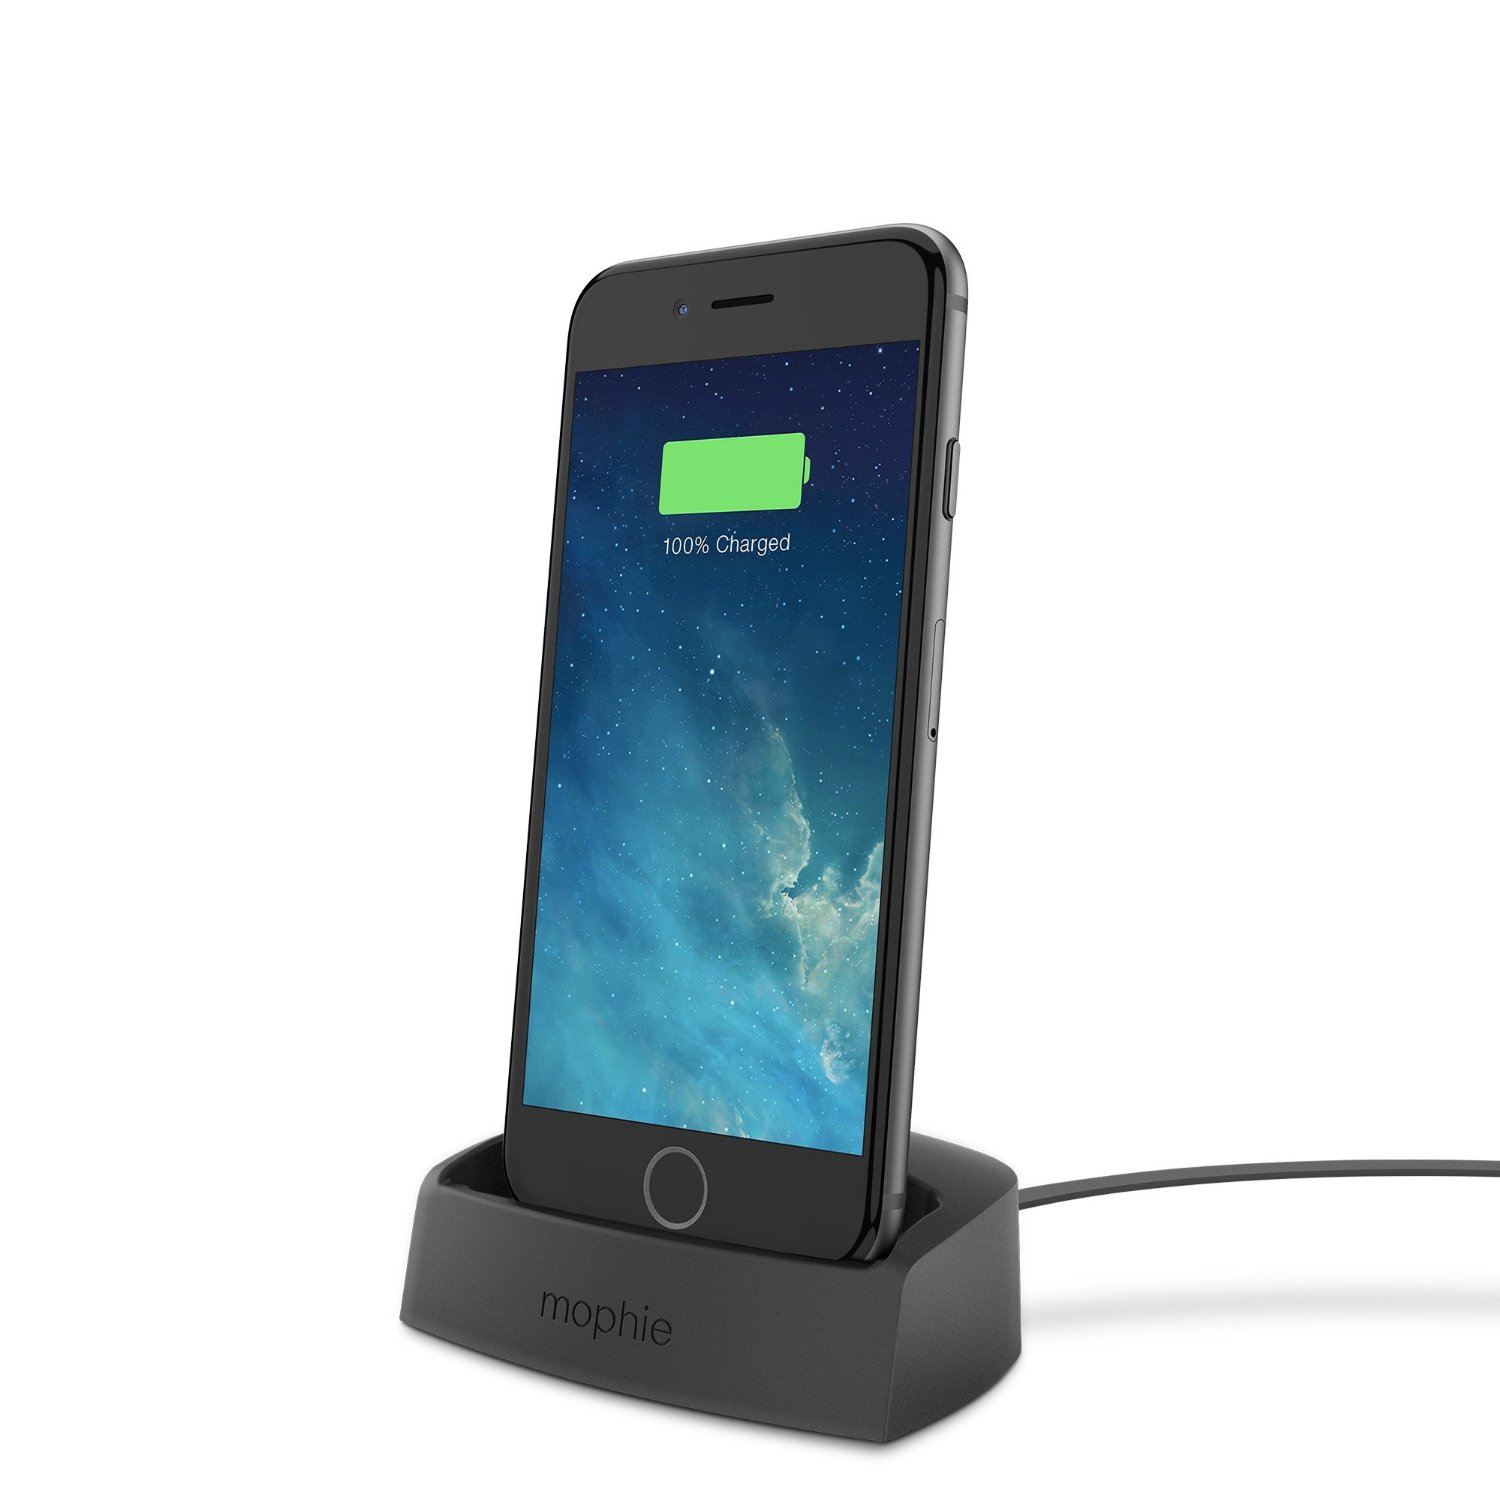 mophie Lightning Desktop Dock 1